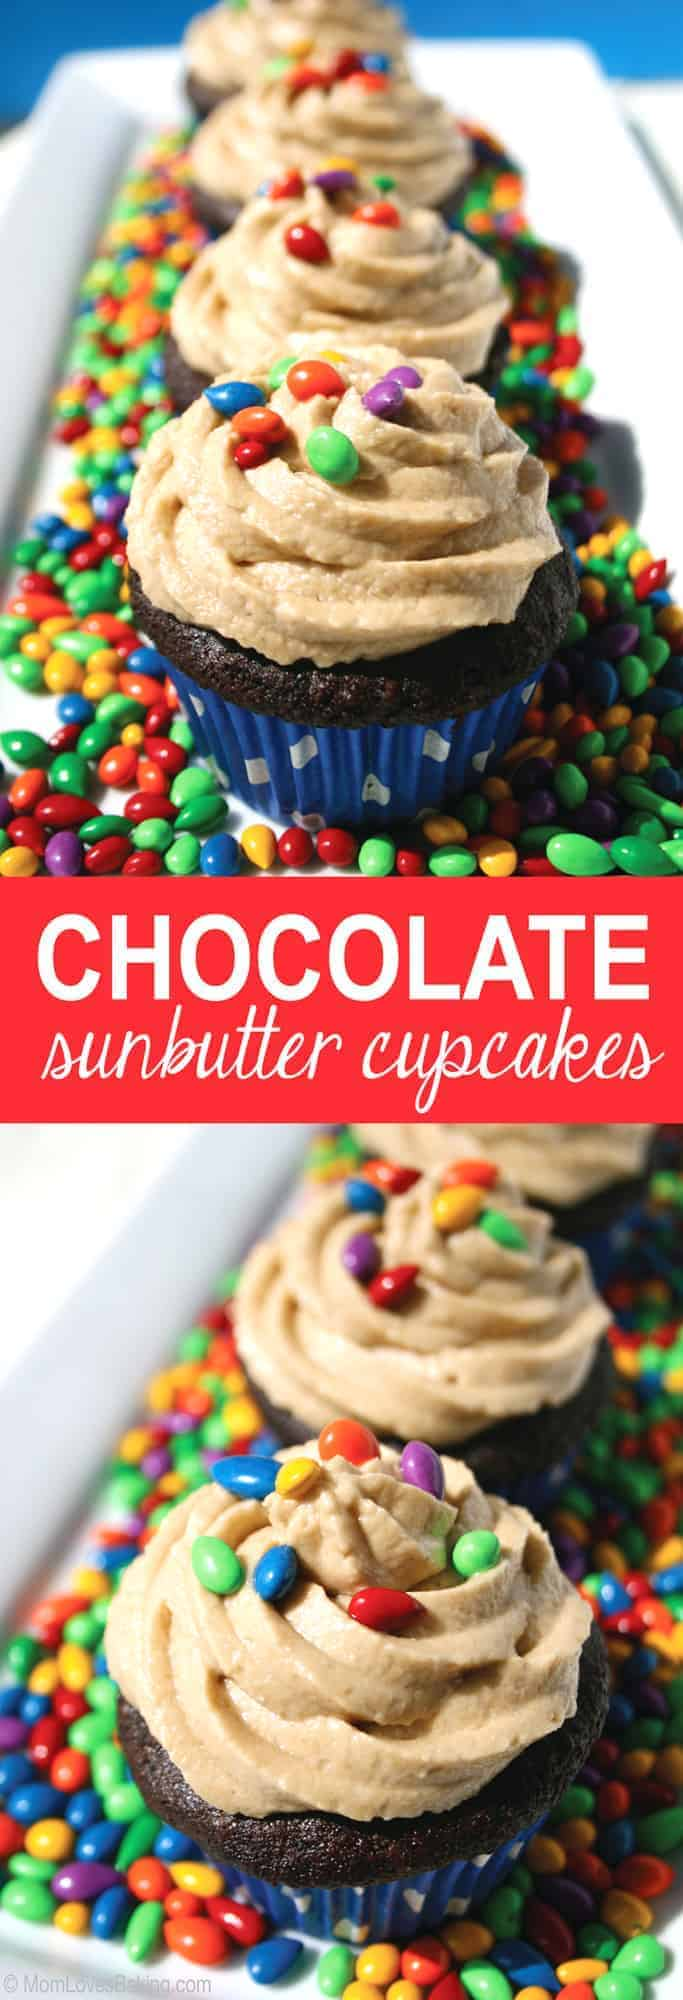 Chocolate-Sunbutter-Cupcakes-Long